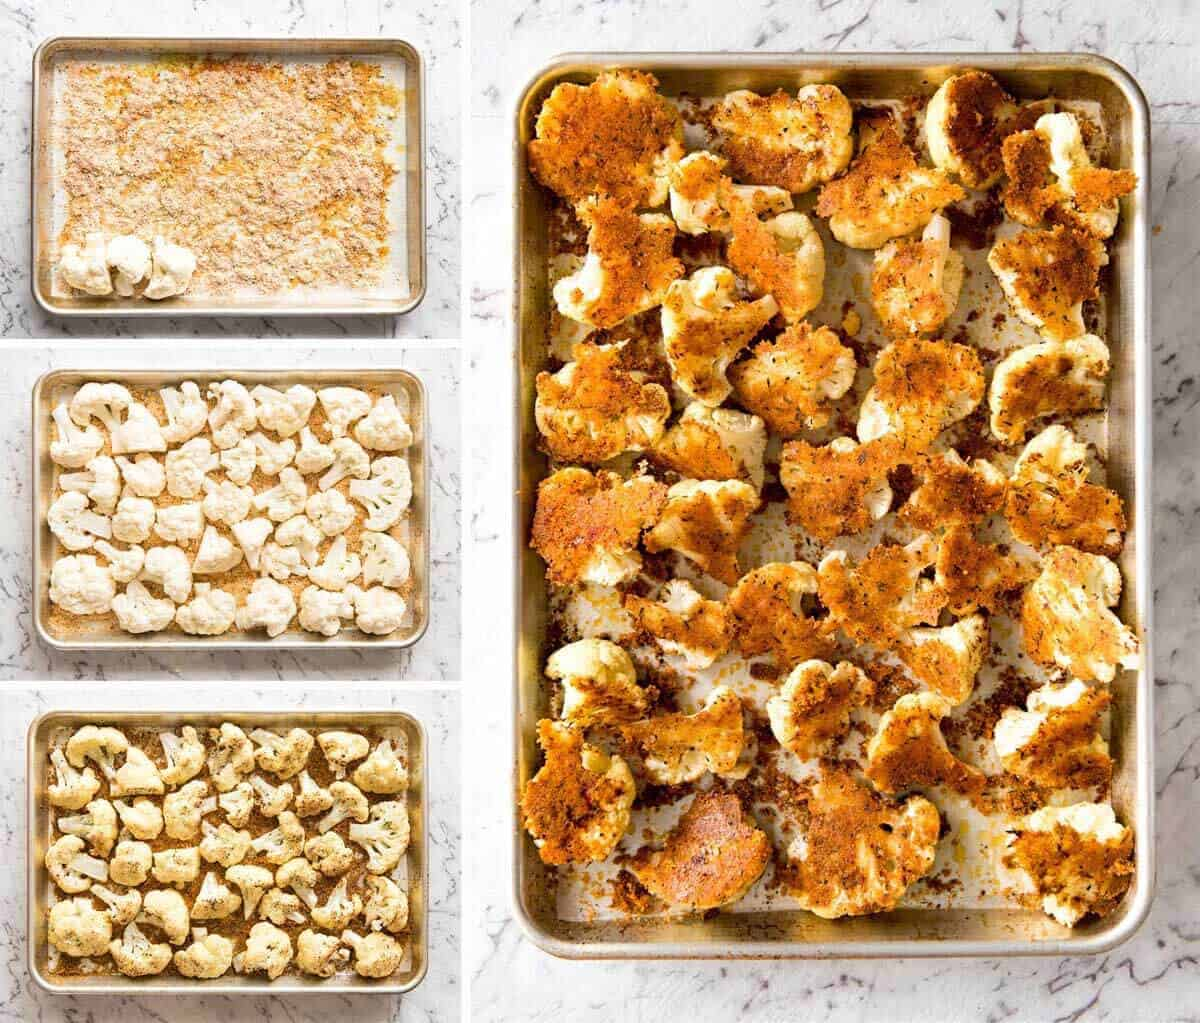 Try this Roasted Parmesan Crusted Cauliflower for dinner tonight! Serve it as a side or as a main meal, or how about as a healthy, low carb snack at a gathering? It's quick, easy and off-the-charts delicious! www.recipetineats.com